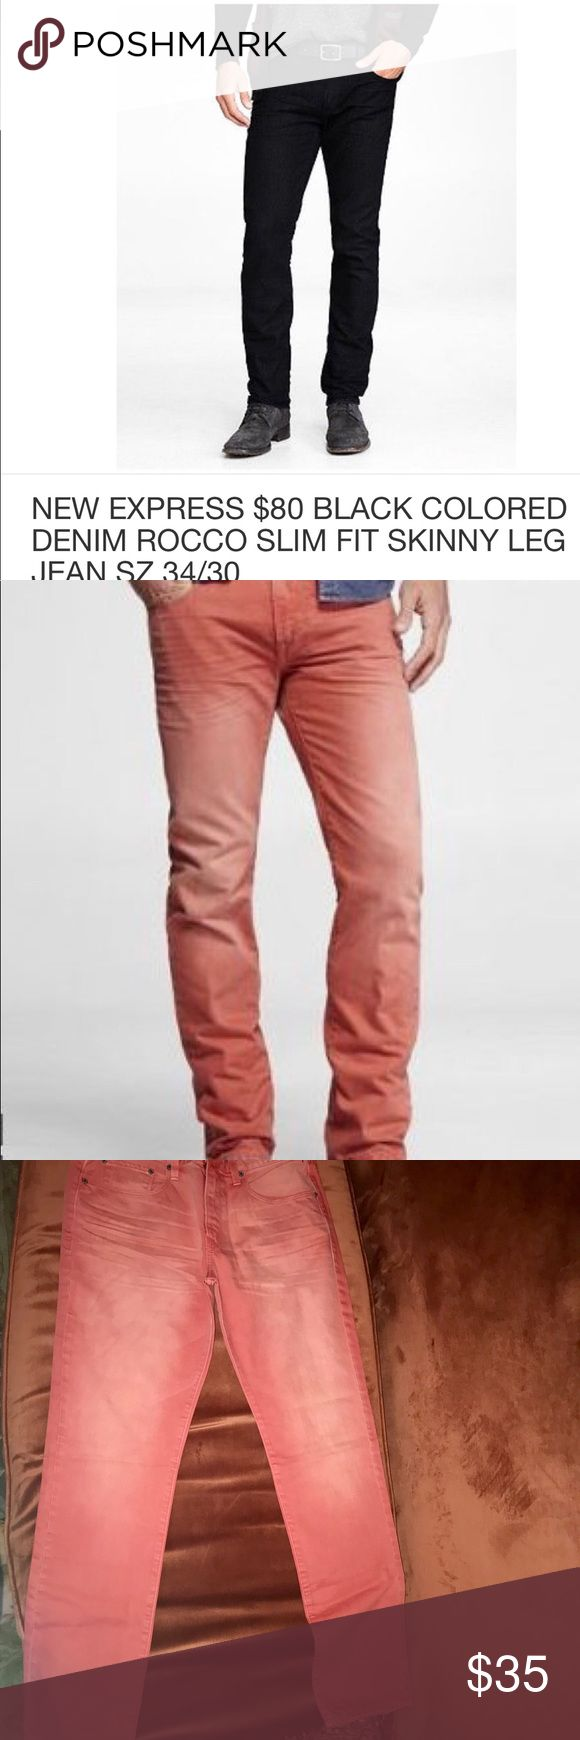 Express Men Rocco Jeans 32x34 in Coral Express Men Jeans Brand New Size: 32 x 34 Style: Rocco Fit: Skinny Leg Precision Fit Color: Coral Original Retail Price $80 Being sold for $50 + shipping Express Jeans Skinny